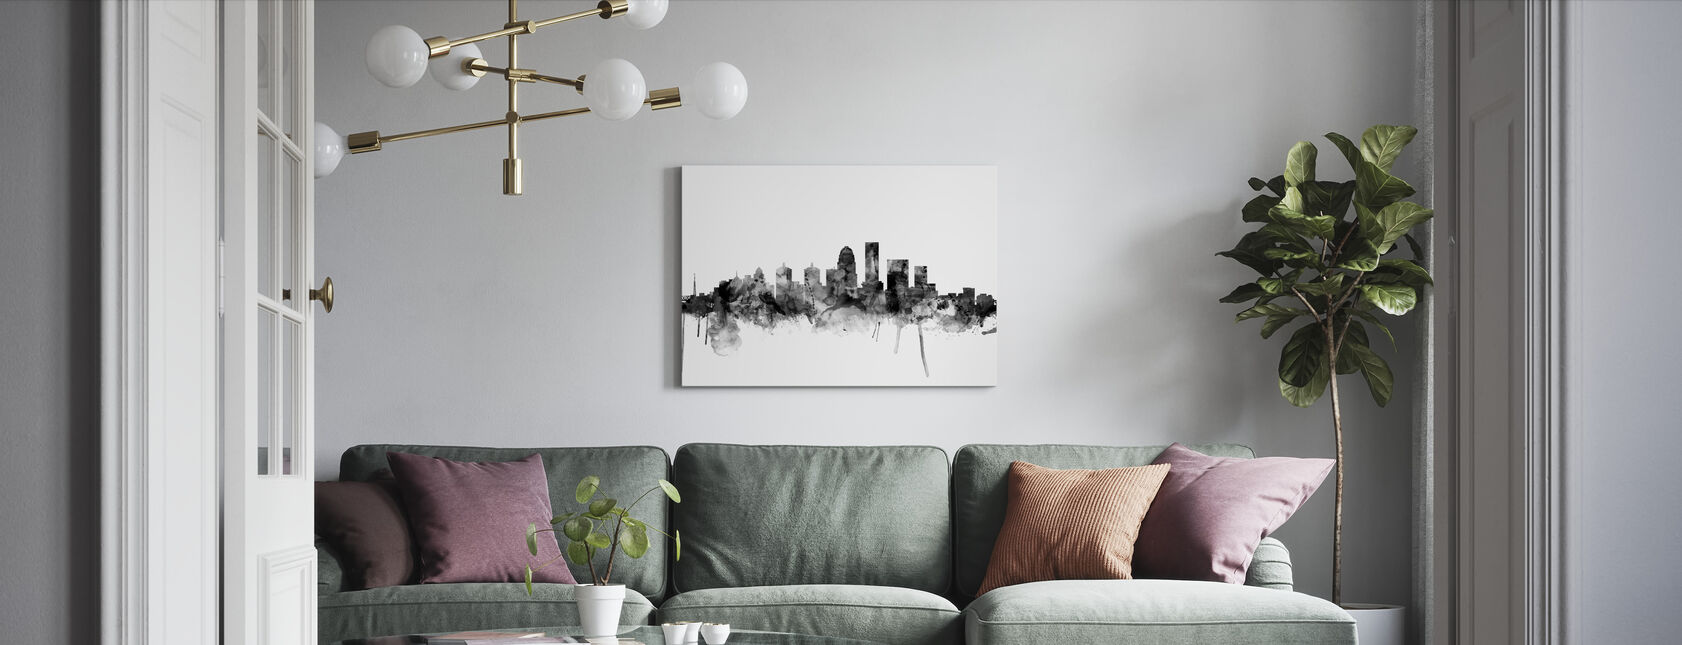 Louisville Kentucky Skyline Zwart - Canvas print - Woonkamer